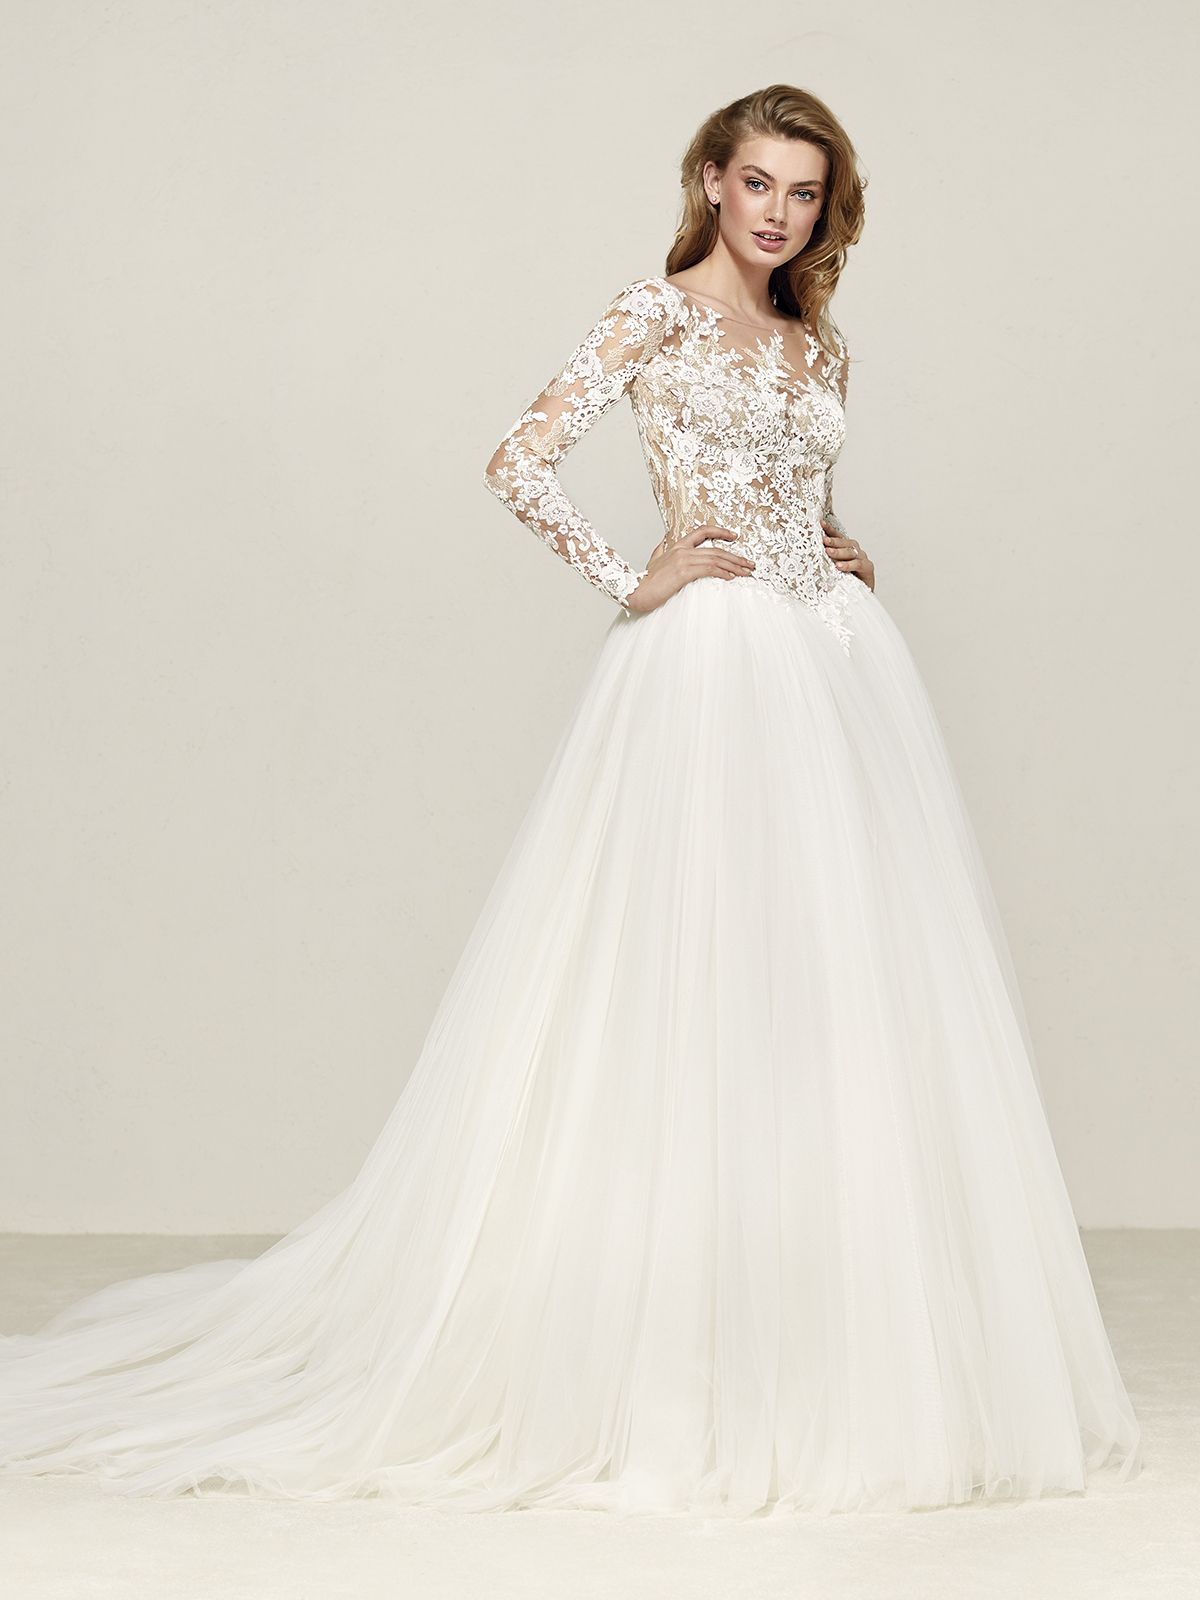 Wedding dresses out of pronovias dropal silhouette ball gown